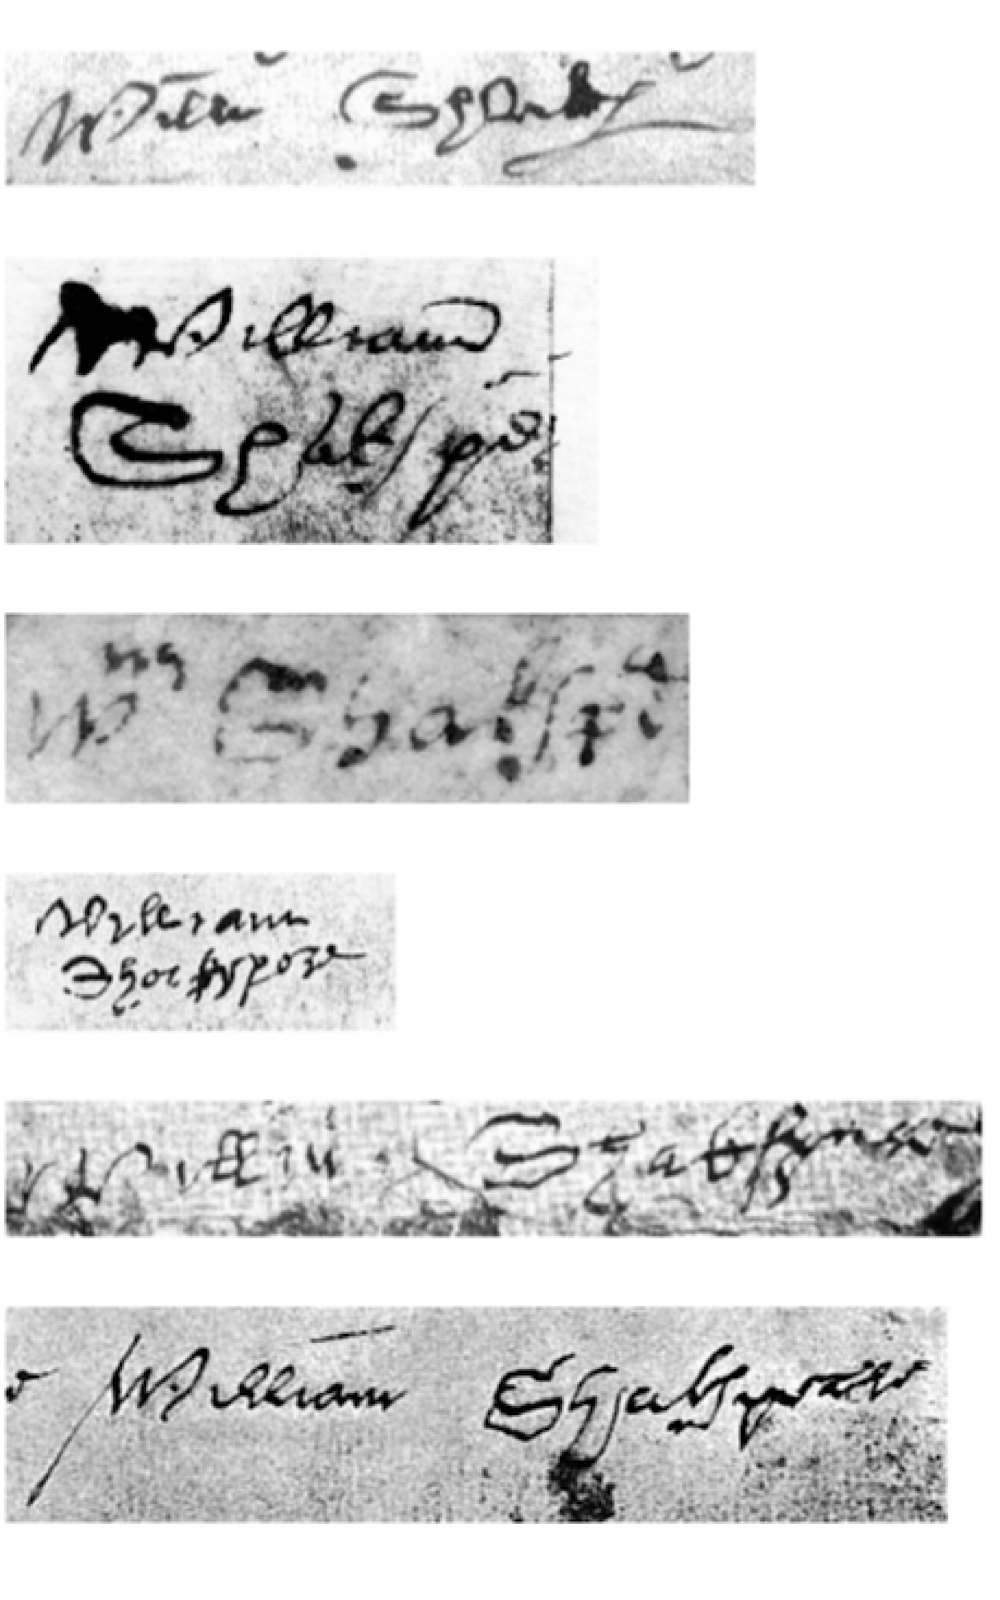 A collage shows six different signatures